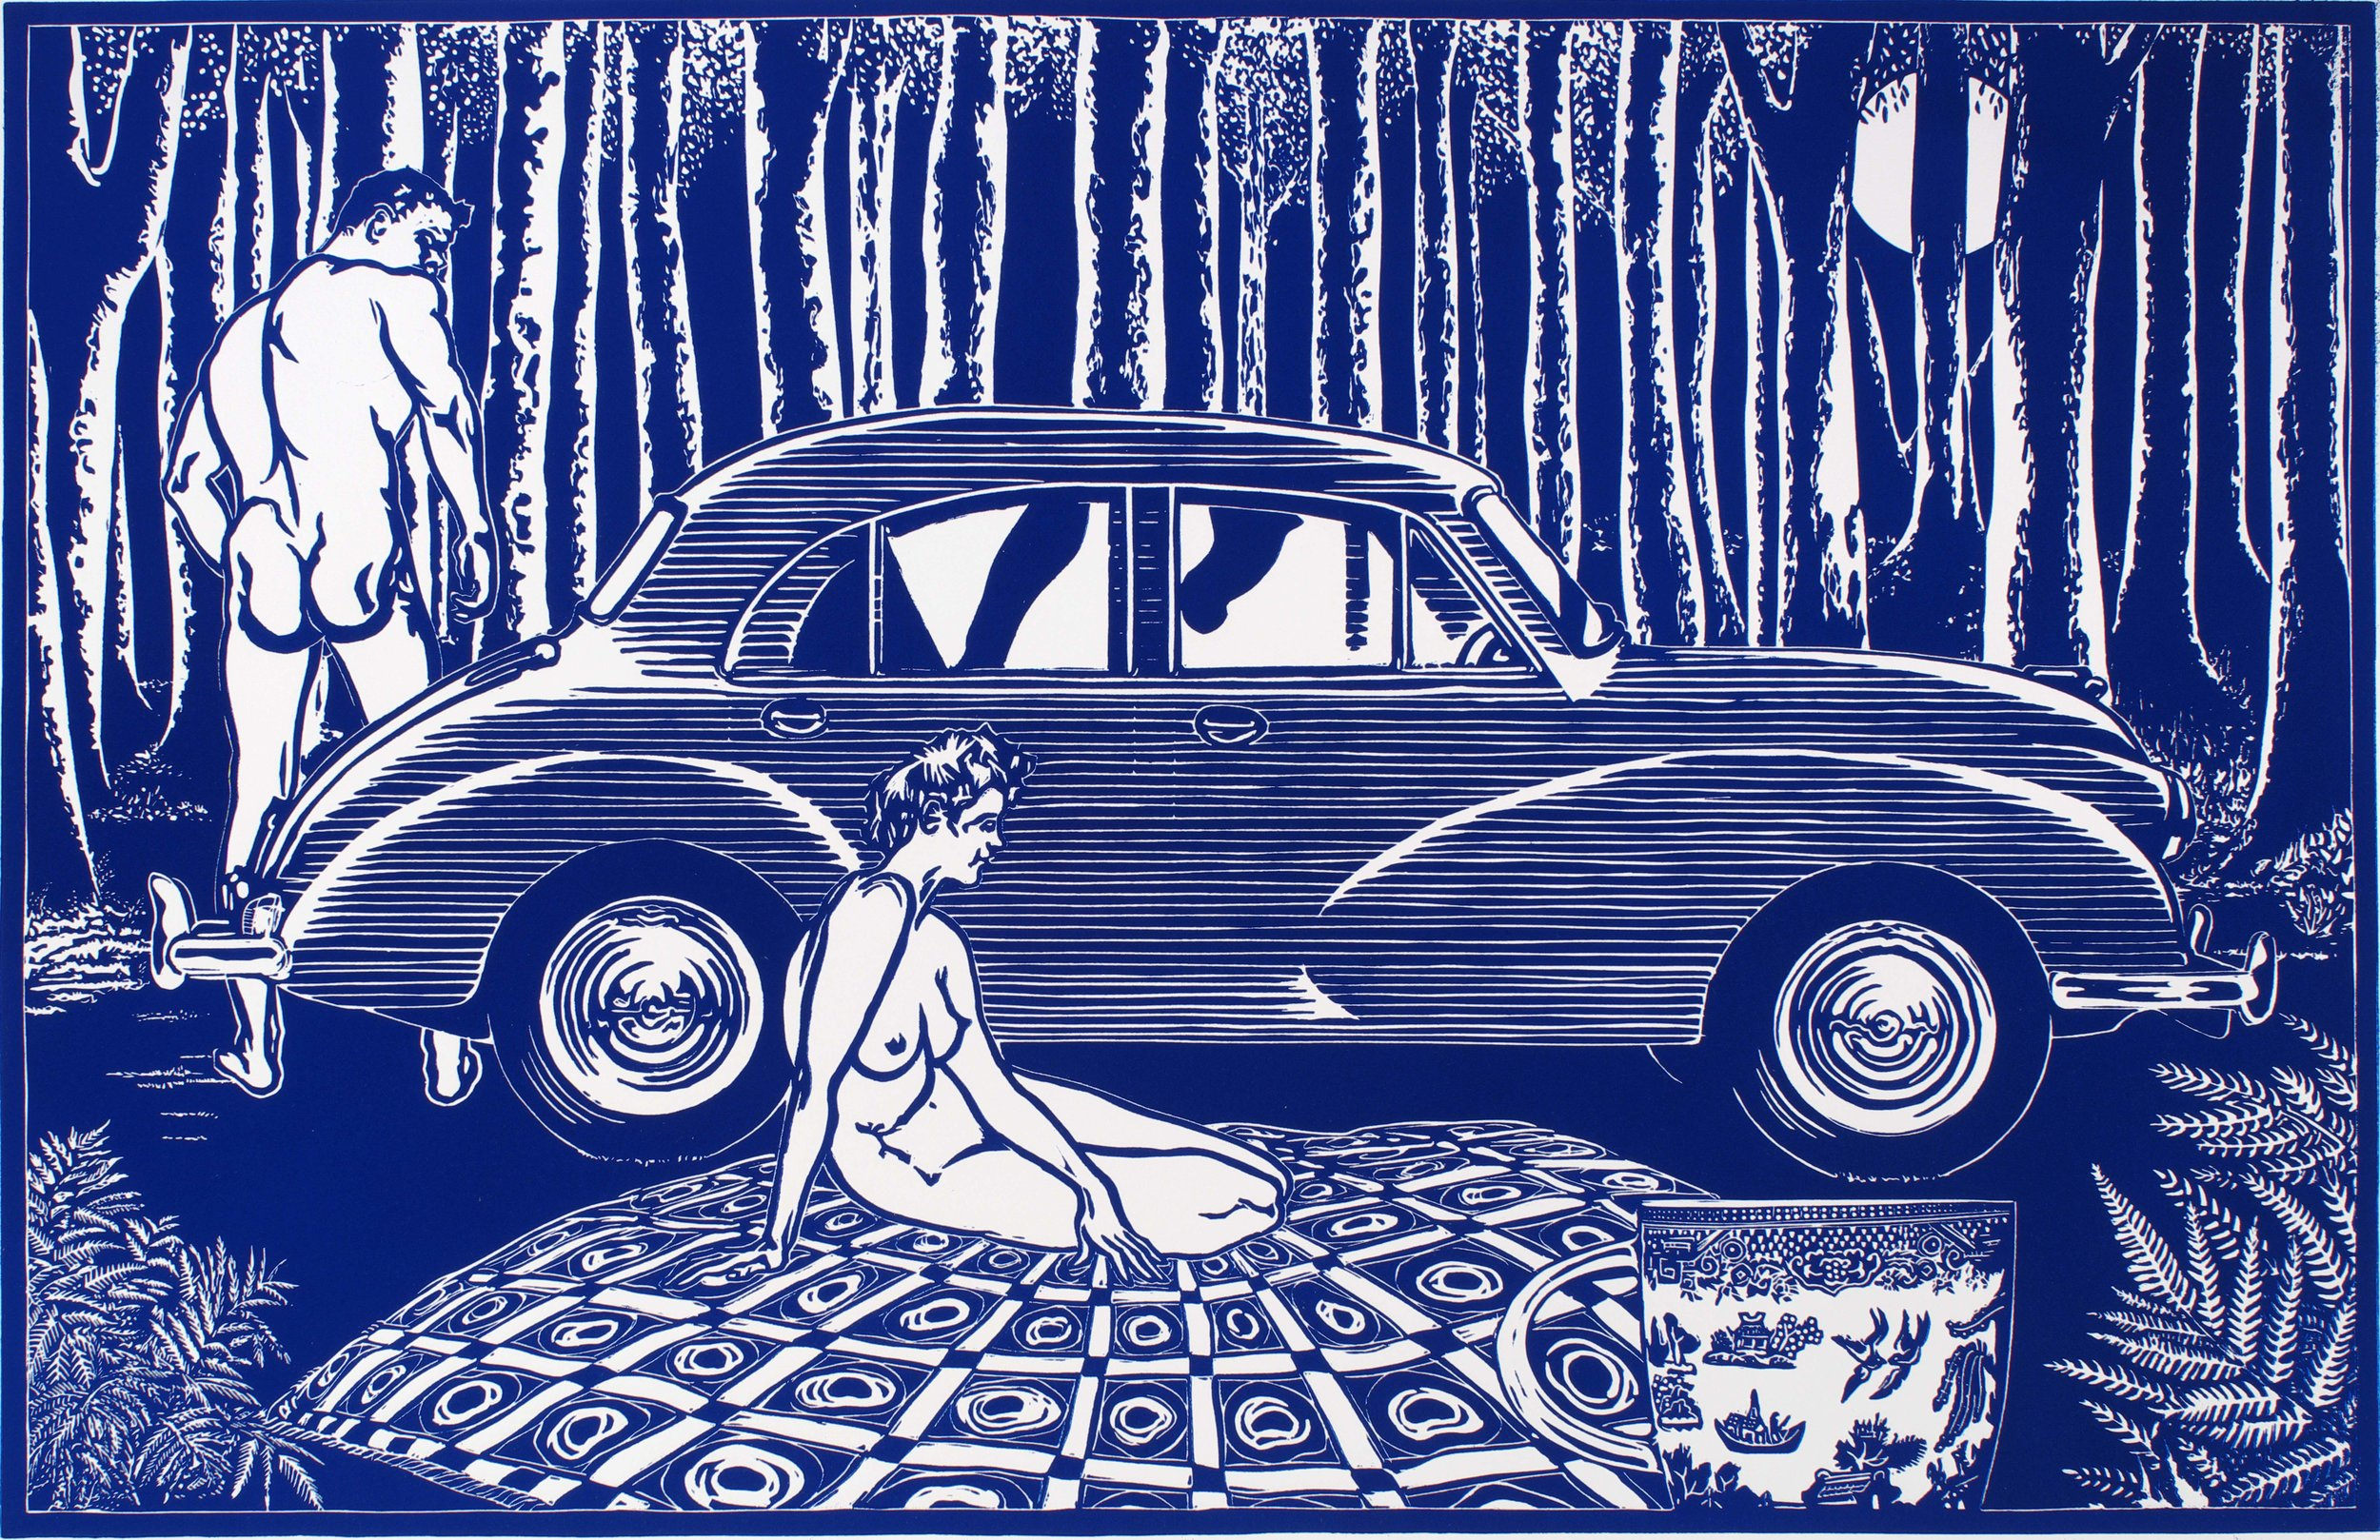 Ross Woodrow   Origin of Modernism   lino print on rag paper, 690 x 1060 mm. Edition of 5.  This large lino print interlocks the private and public using generic, banal sources. Both figures are directly taken from drawing manuals and the Morris Minor is based on the original 1948 advertisement for the car. The cup is the familiar Willow Pattern. Although the print was made in 2010 it evokes Australia's first modern press sensation involving adulterous sex and death on the banks of the Lane Cove River in Sydney, namely the Bogle-Chandler case. In 1968/69 when I was at art college experimenting with abstract painting we used to make trips around Brisbane in a beaten up Morris Minor belonging to an anonymous co-student (Keith Bradbury).